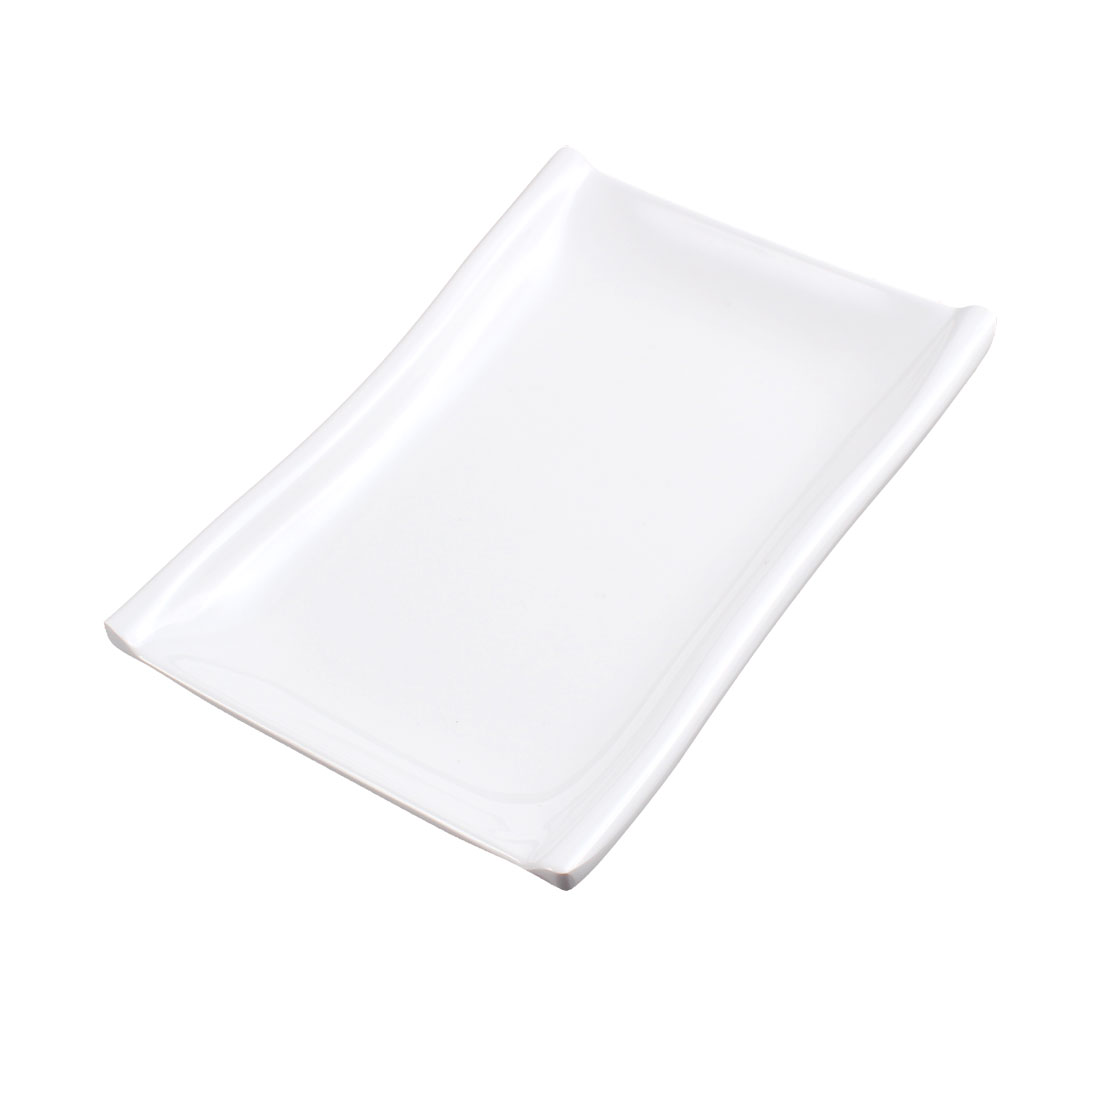 Rectangle Soy Sauce Dipping Sushi Mini Dish Plate 17cm x 12cm White